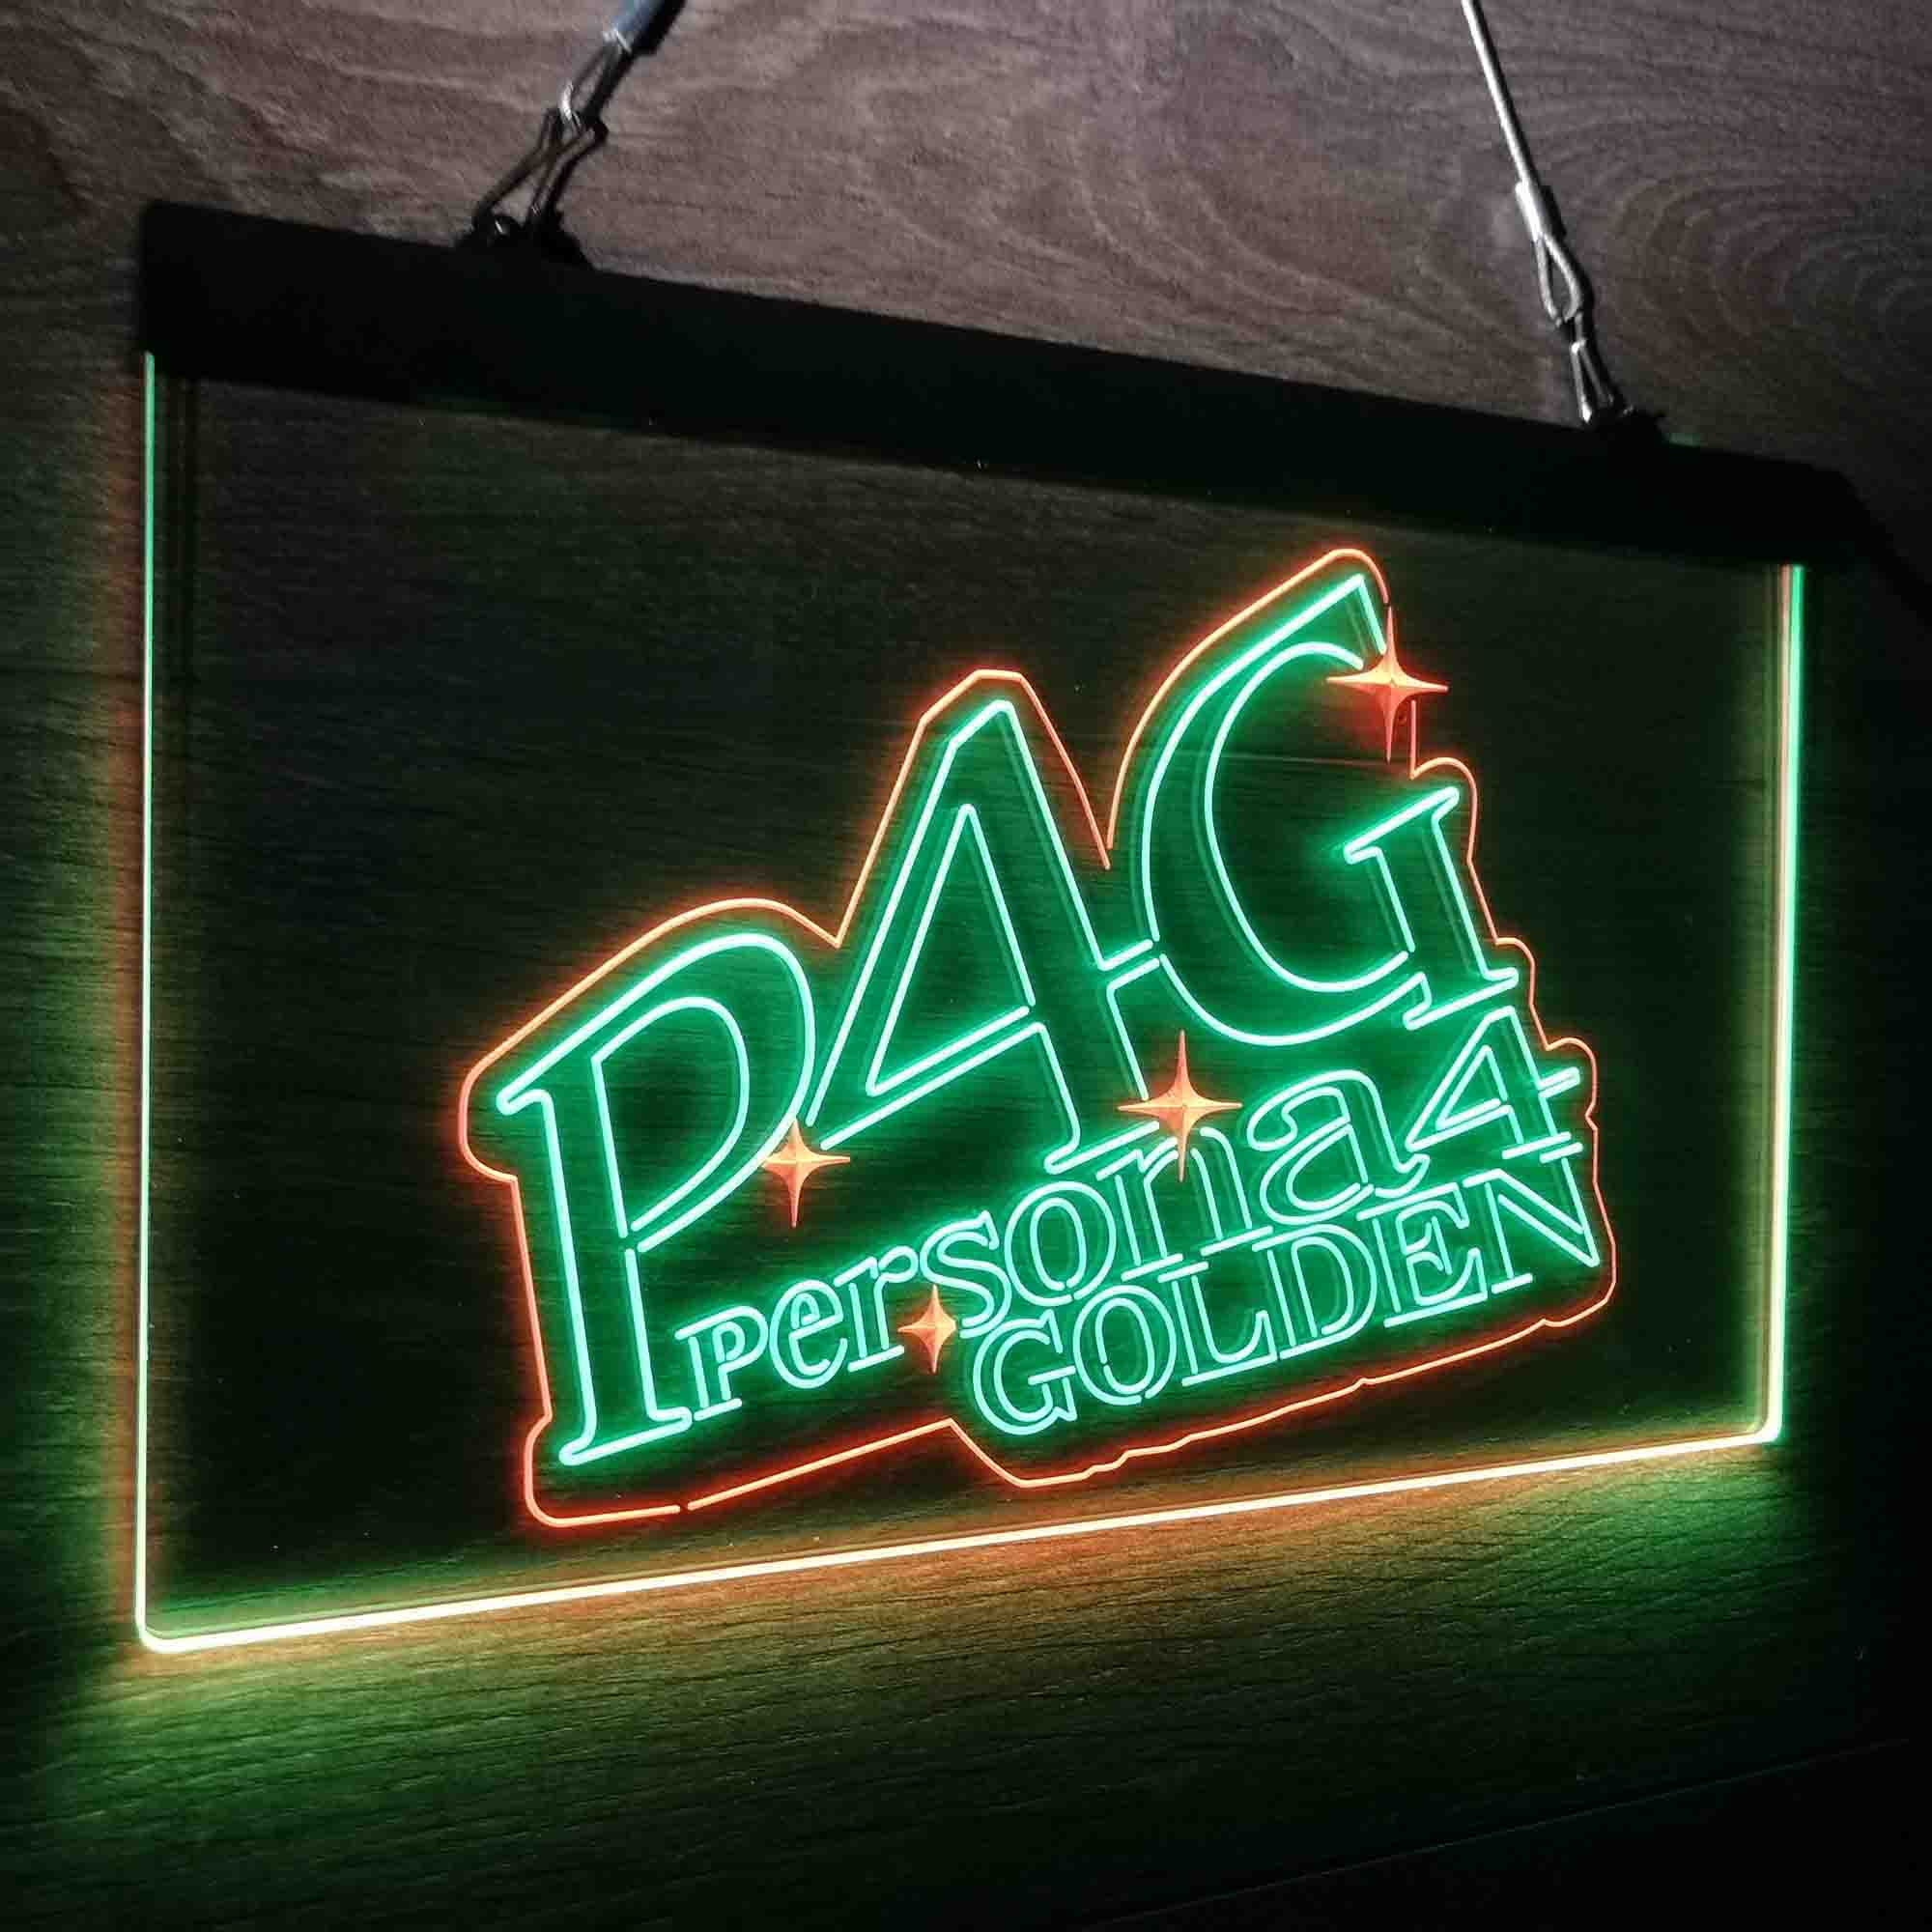 Persona 4 Golden Neon-Like LED Sign